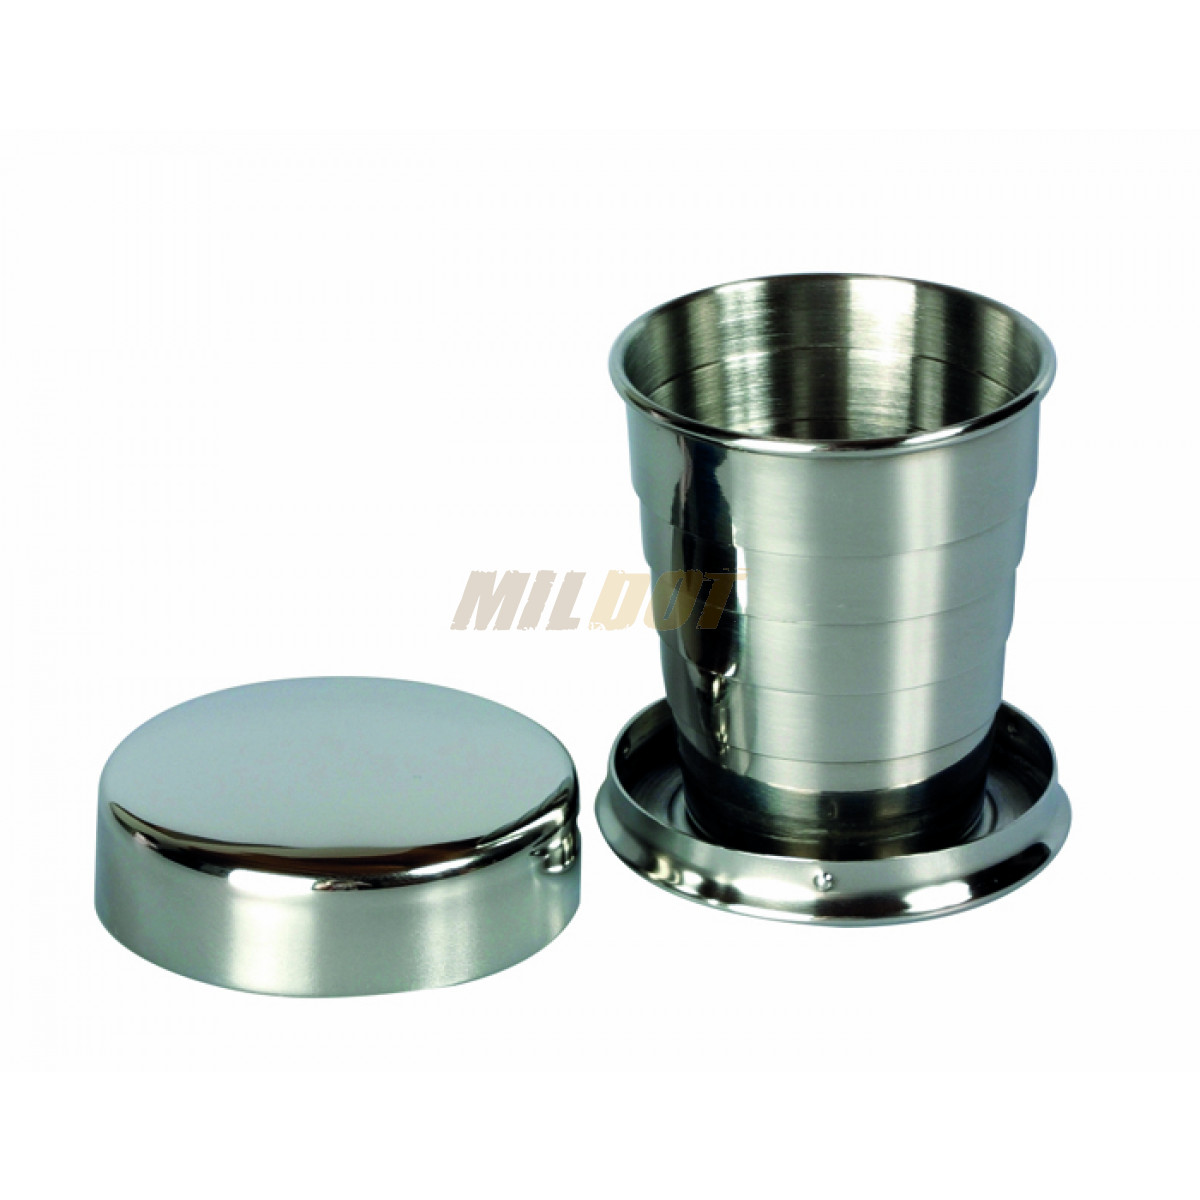 Vaso plegable acero inoxidable relags 57 ml - Acero in vaso prezzi ...